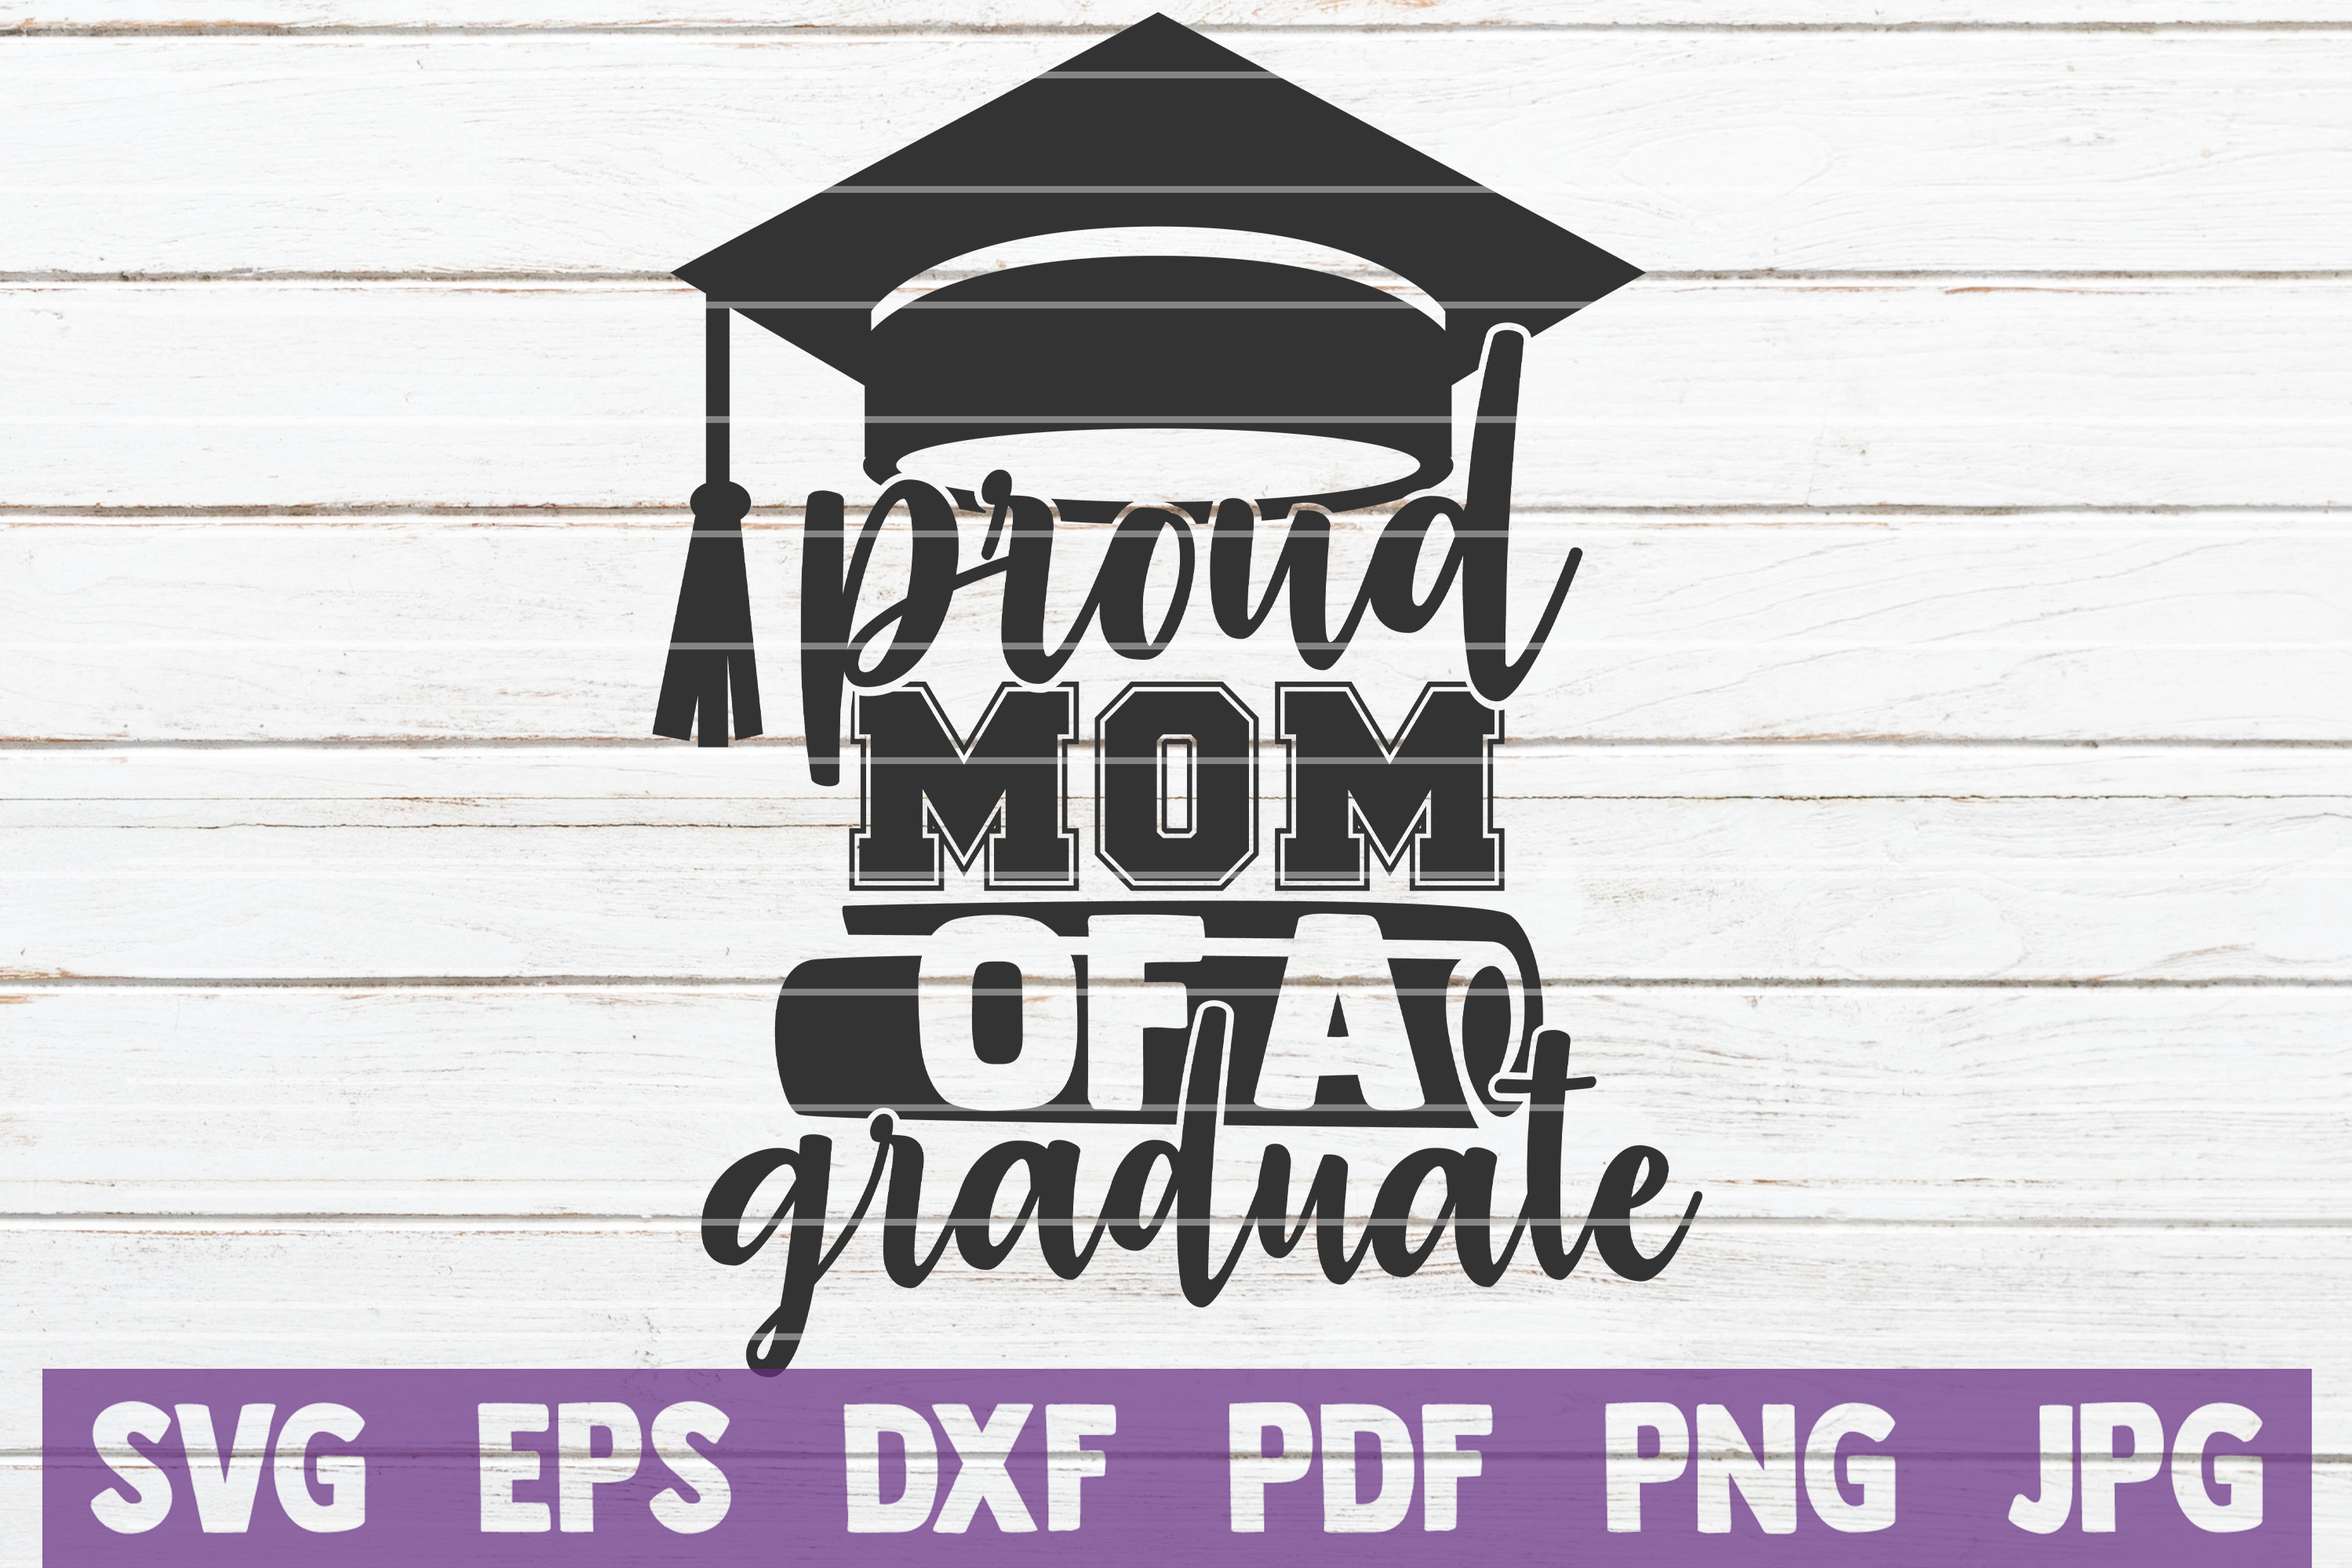 Download Free Proud Mom Of A Graduate Svg Cut File Grafico Por for Cricut Explore, Silhouette and other cutting machines.